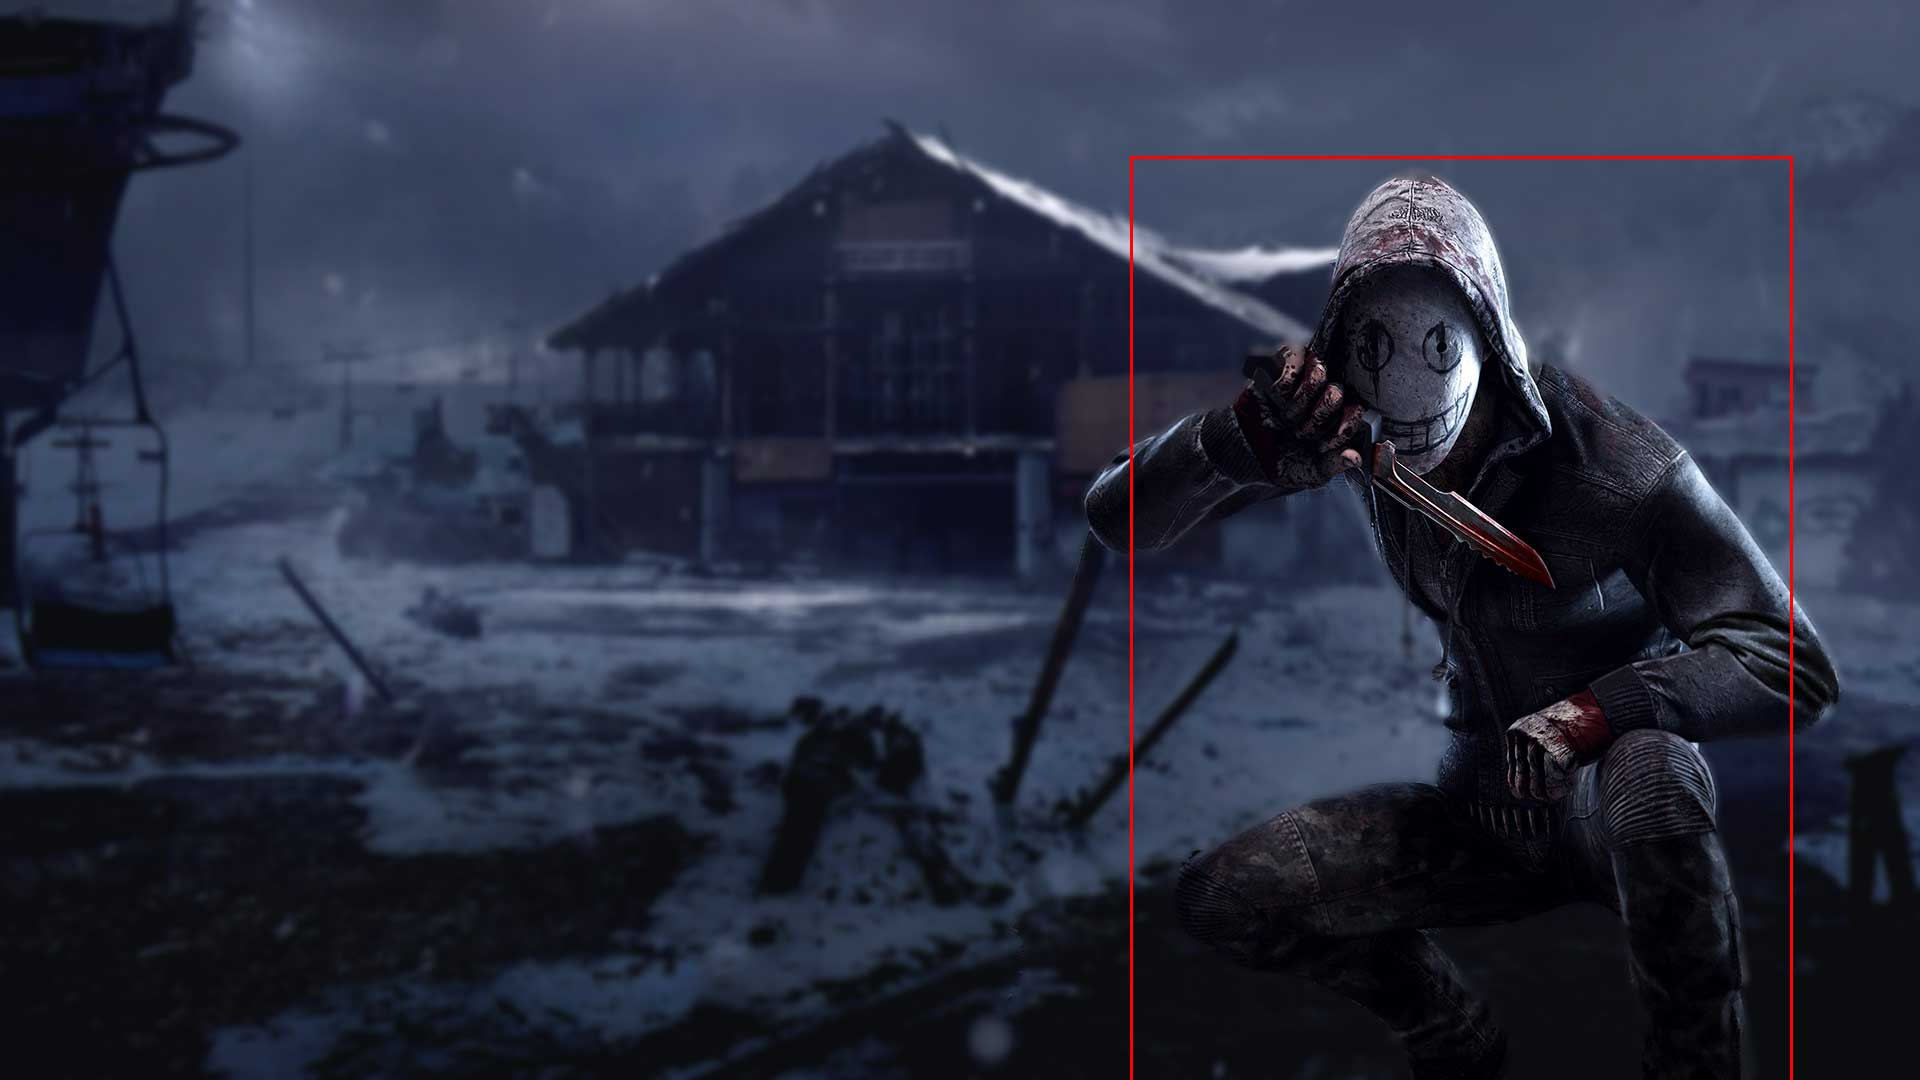 Dead By Daylight Hacks | Best DBD Cheat Download! - Download Dead By Daylight Hacks | Best DBD Cheat Download! for FREE - Free Cheats for Games